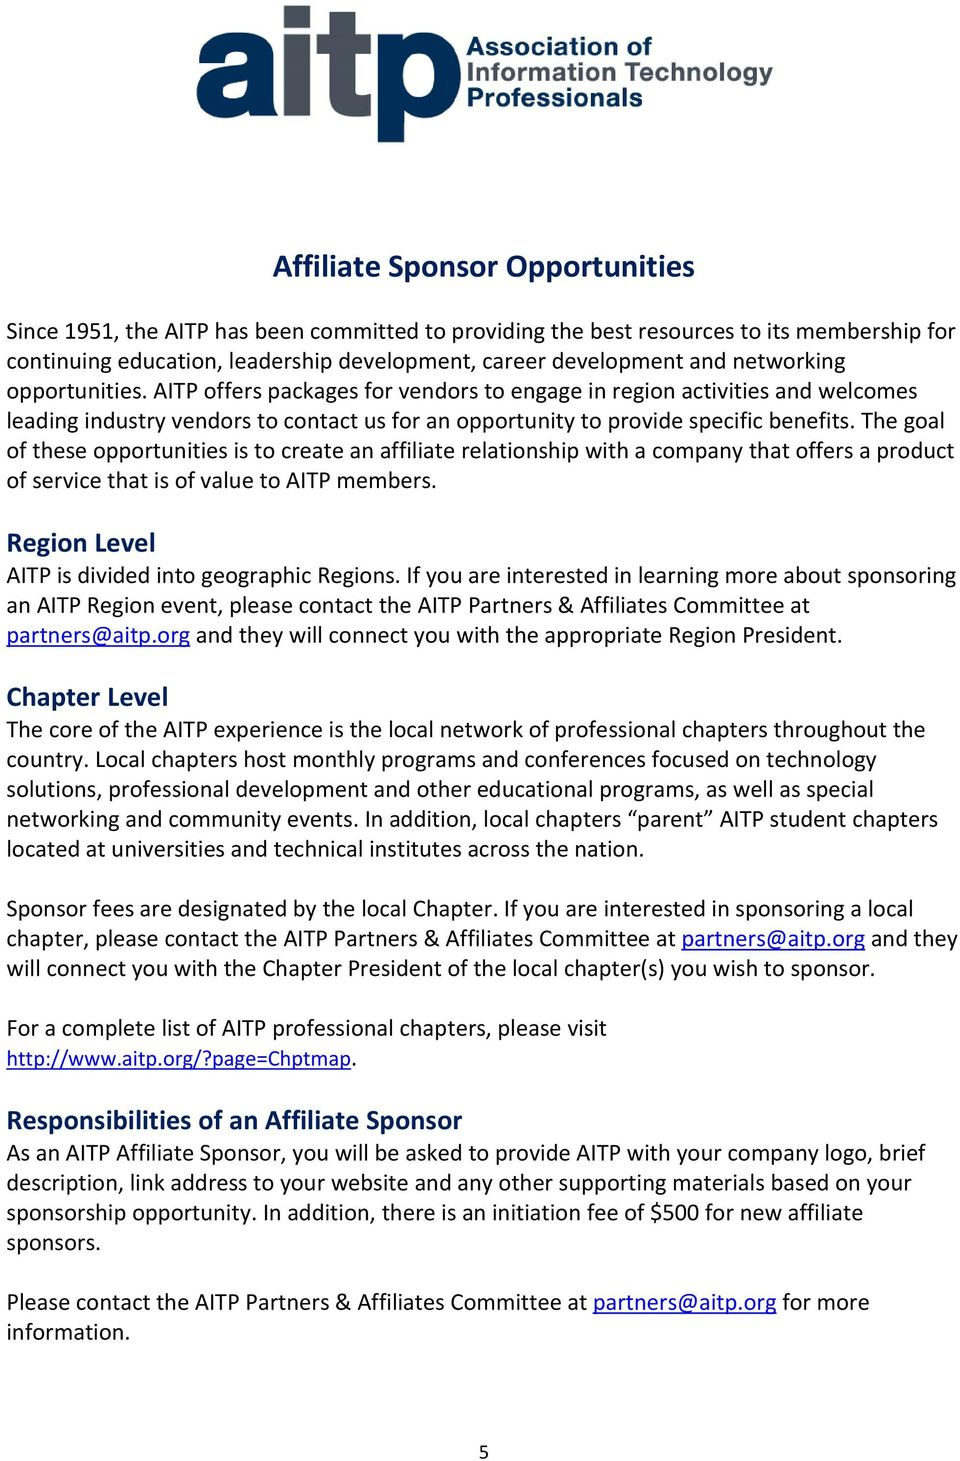 The goal of these opportunities is to create an affiliate relationship with a company that offers a product of service that is of value to AITP members.